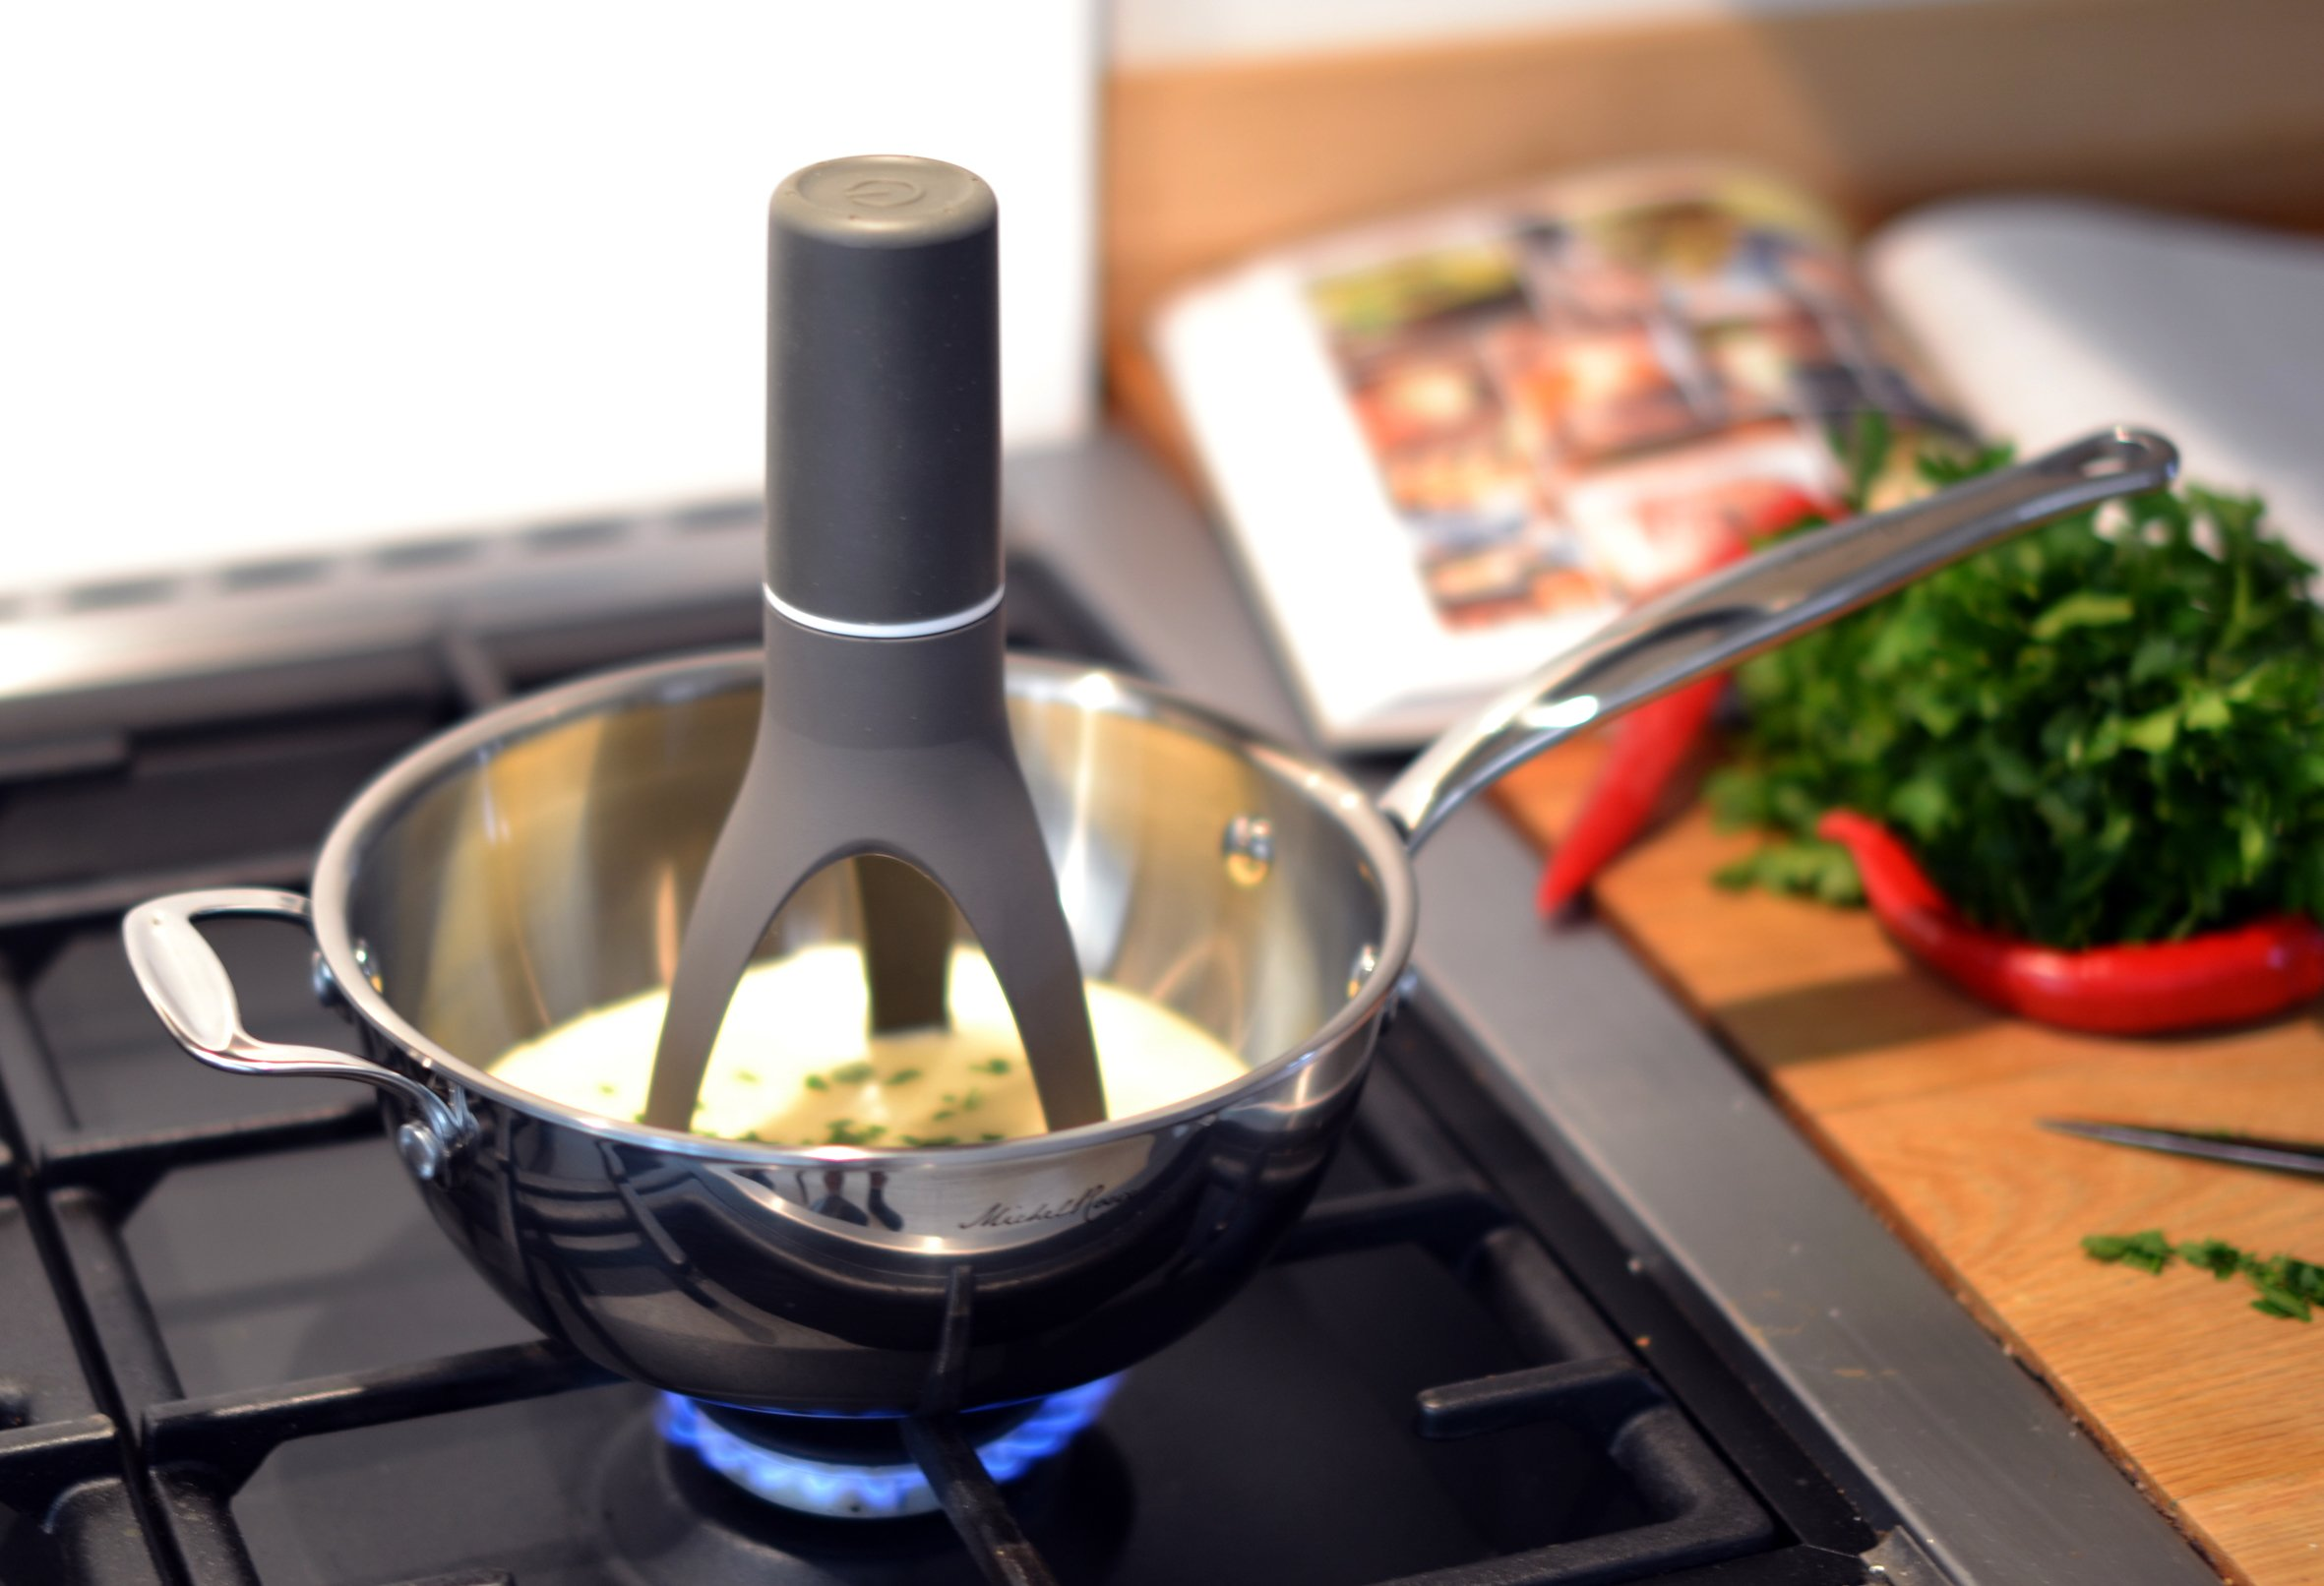 An Automatic Pan Stirrer stirring a creamy soup in a pan